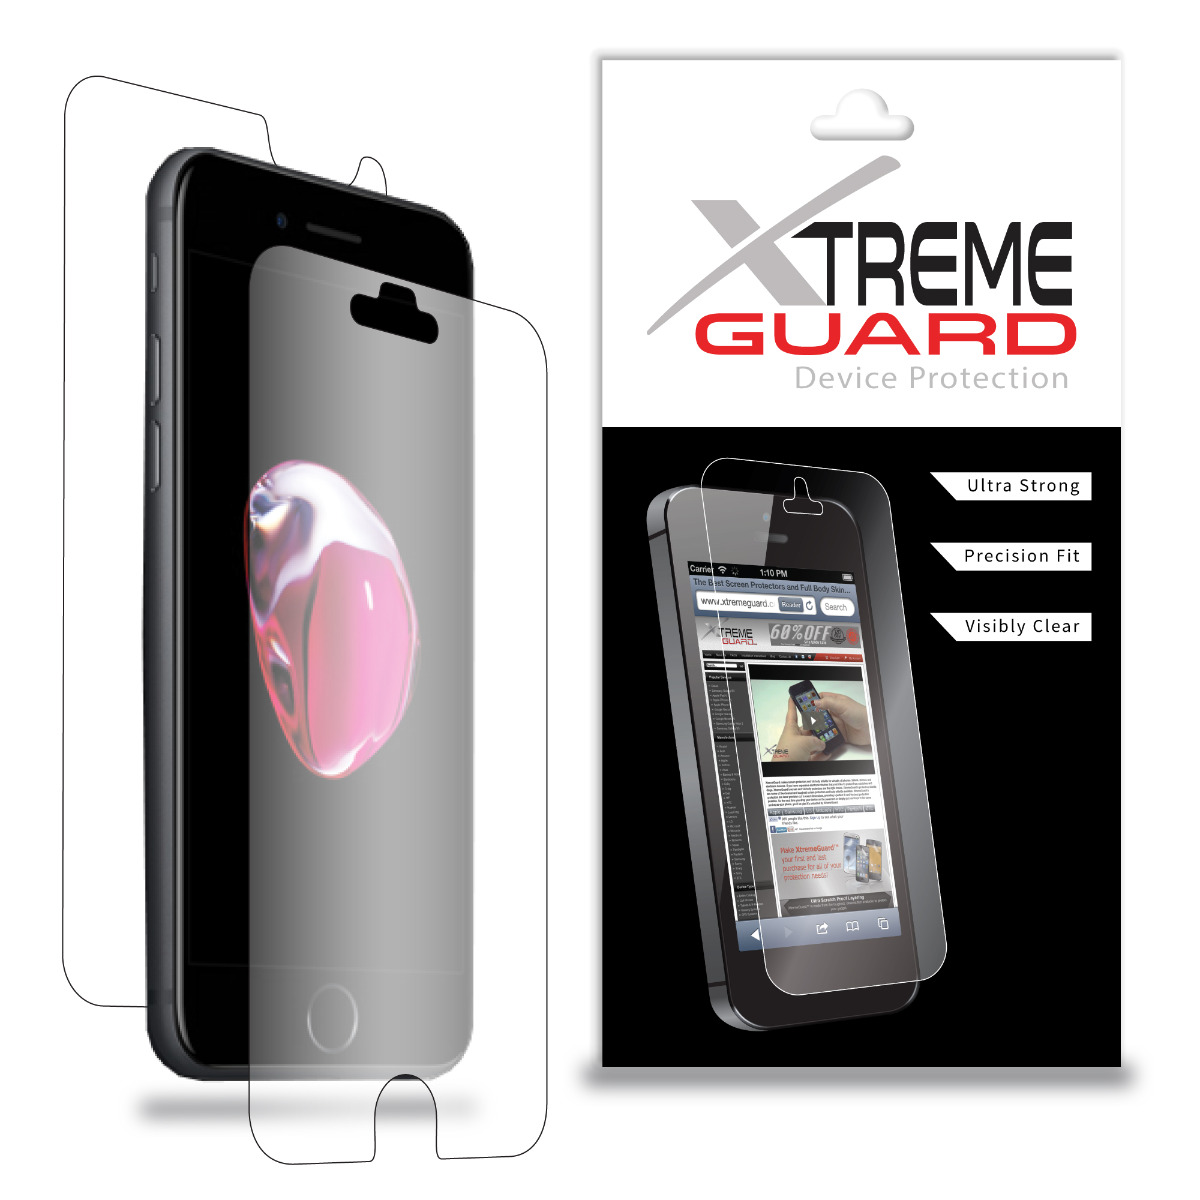 XtremeGUARD Apple iPod Touch 4th Generation Full Body Screen Protector Front,...